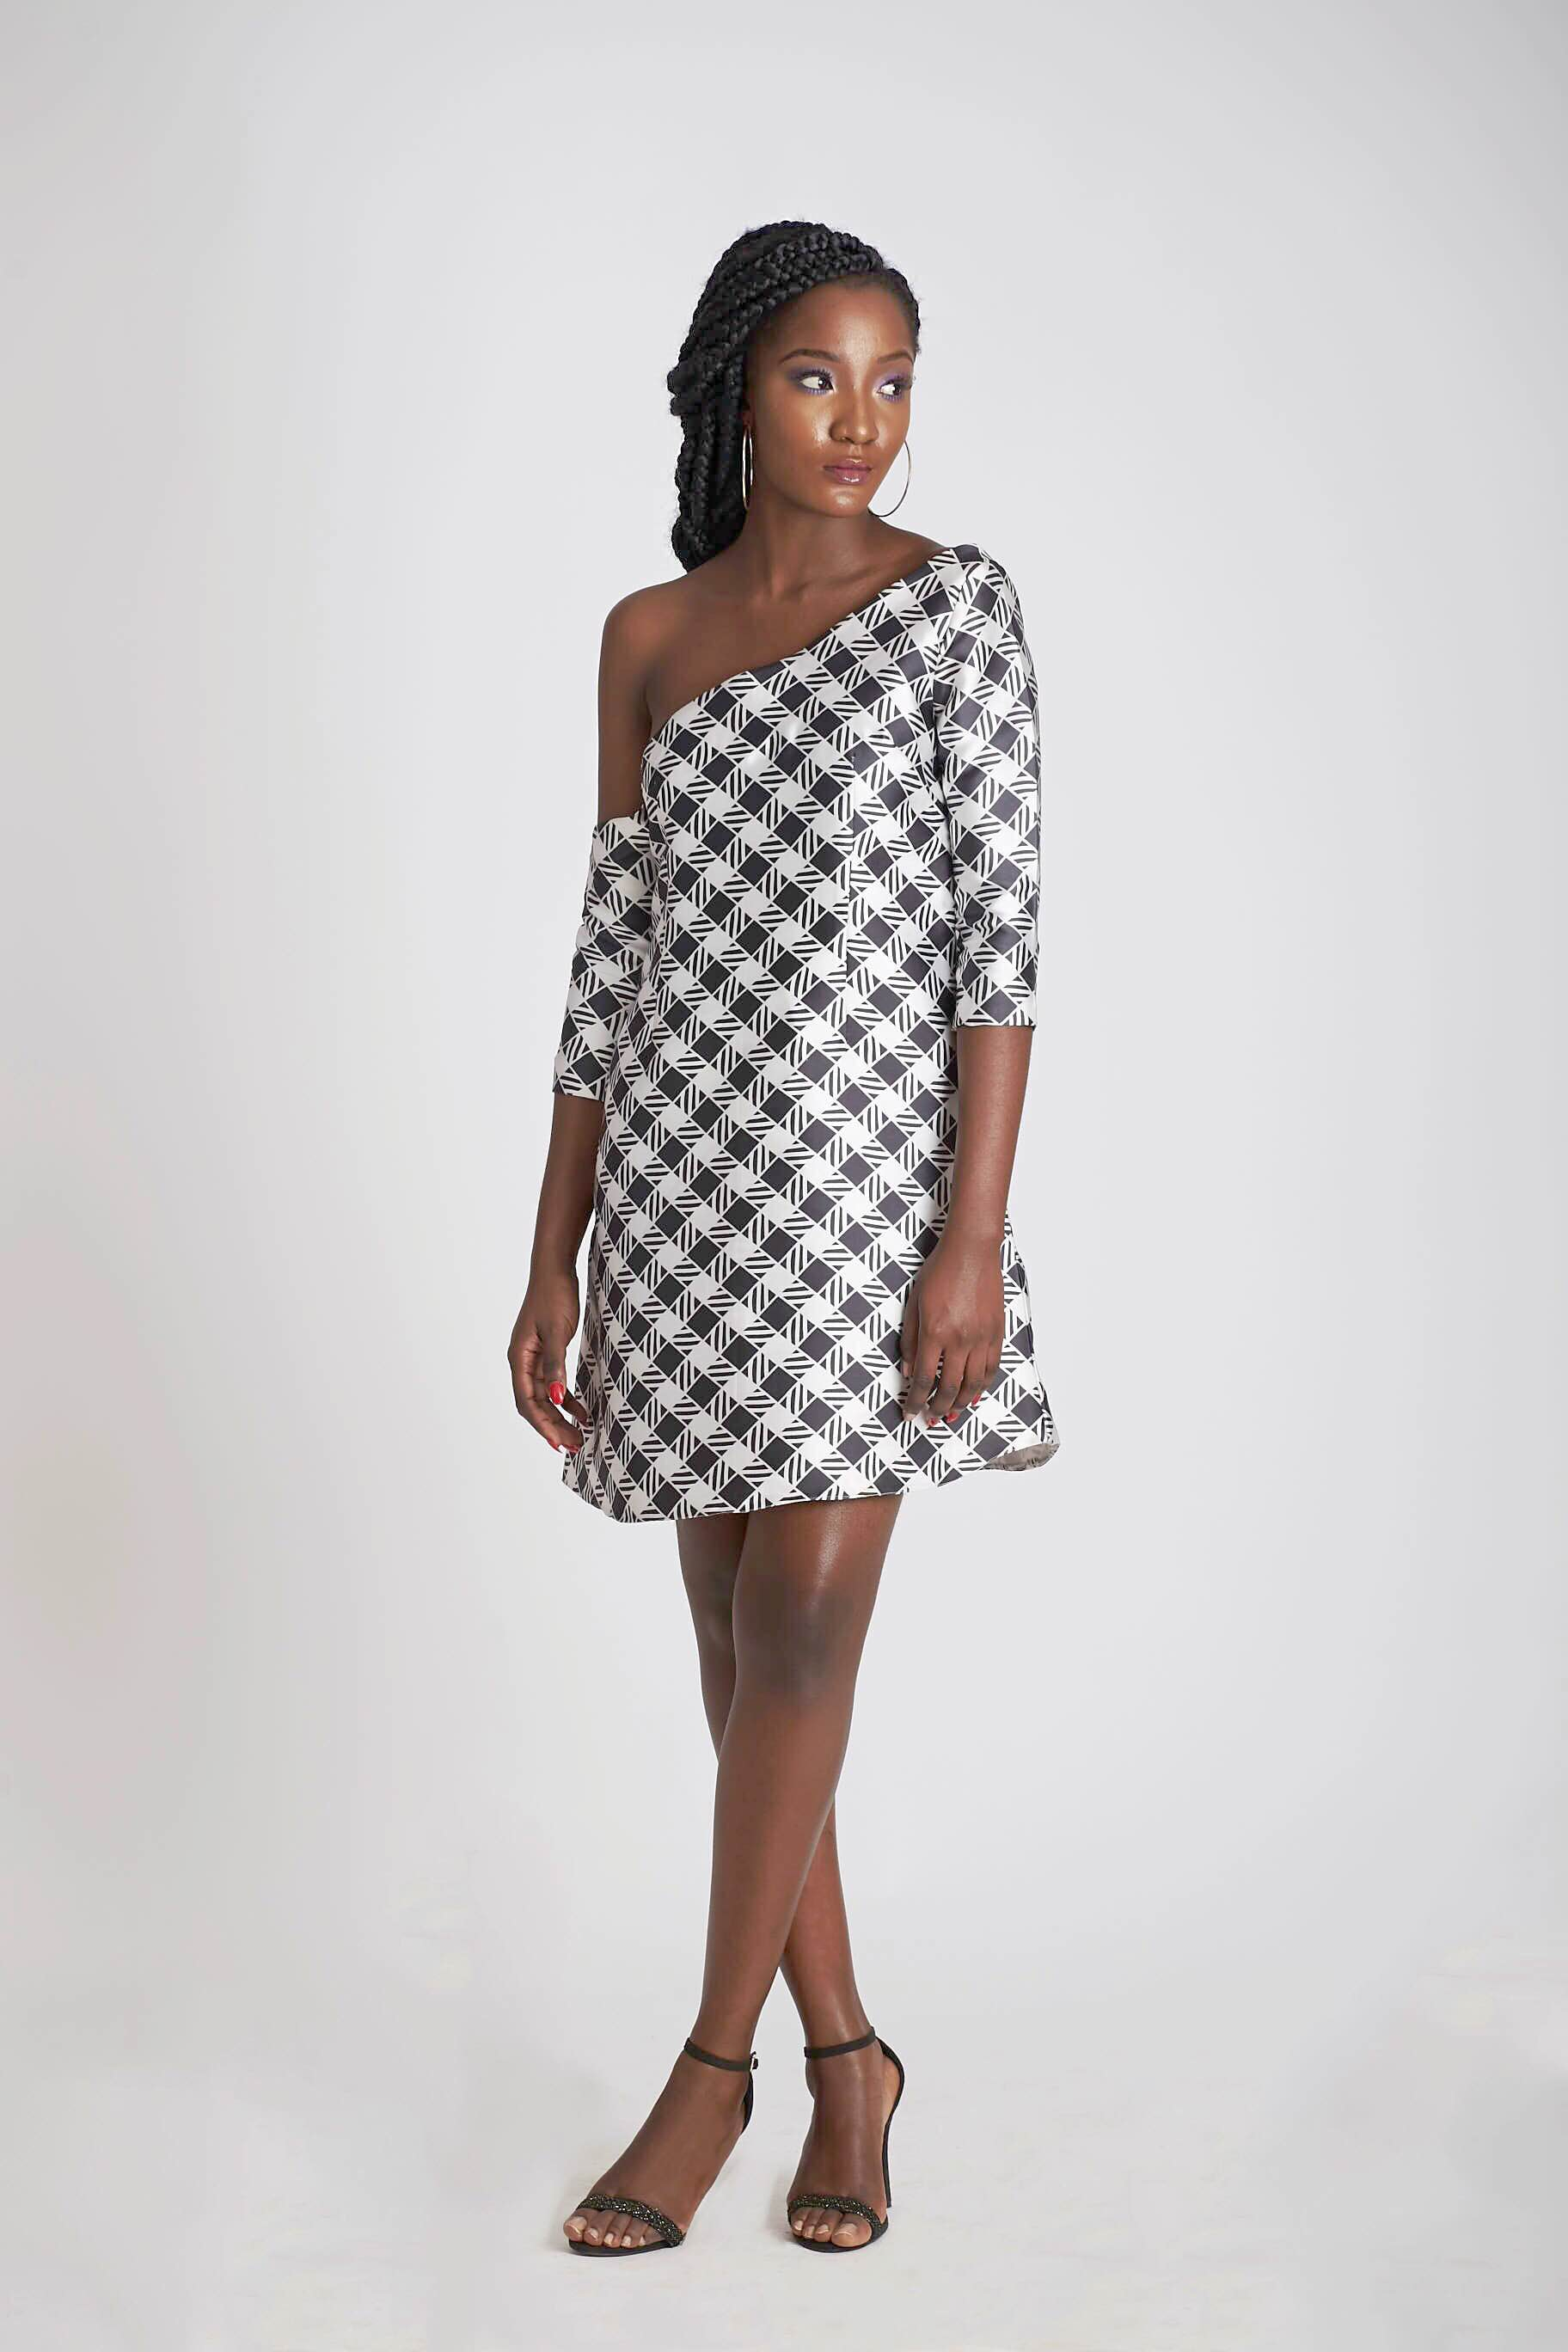 Imad Eduso - BN Style - Collection Lookbook - BellaNaija.com 022